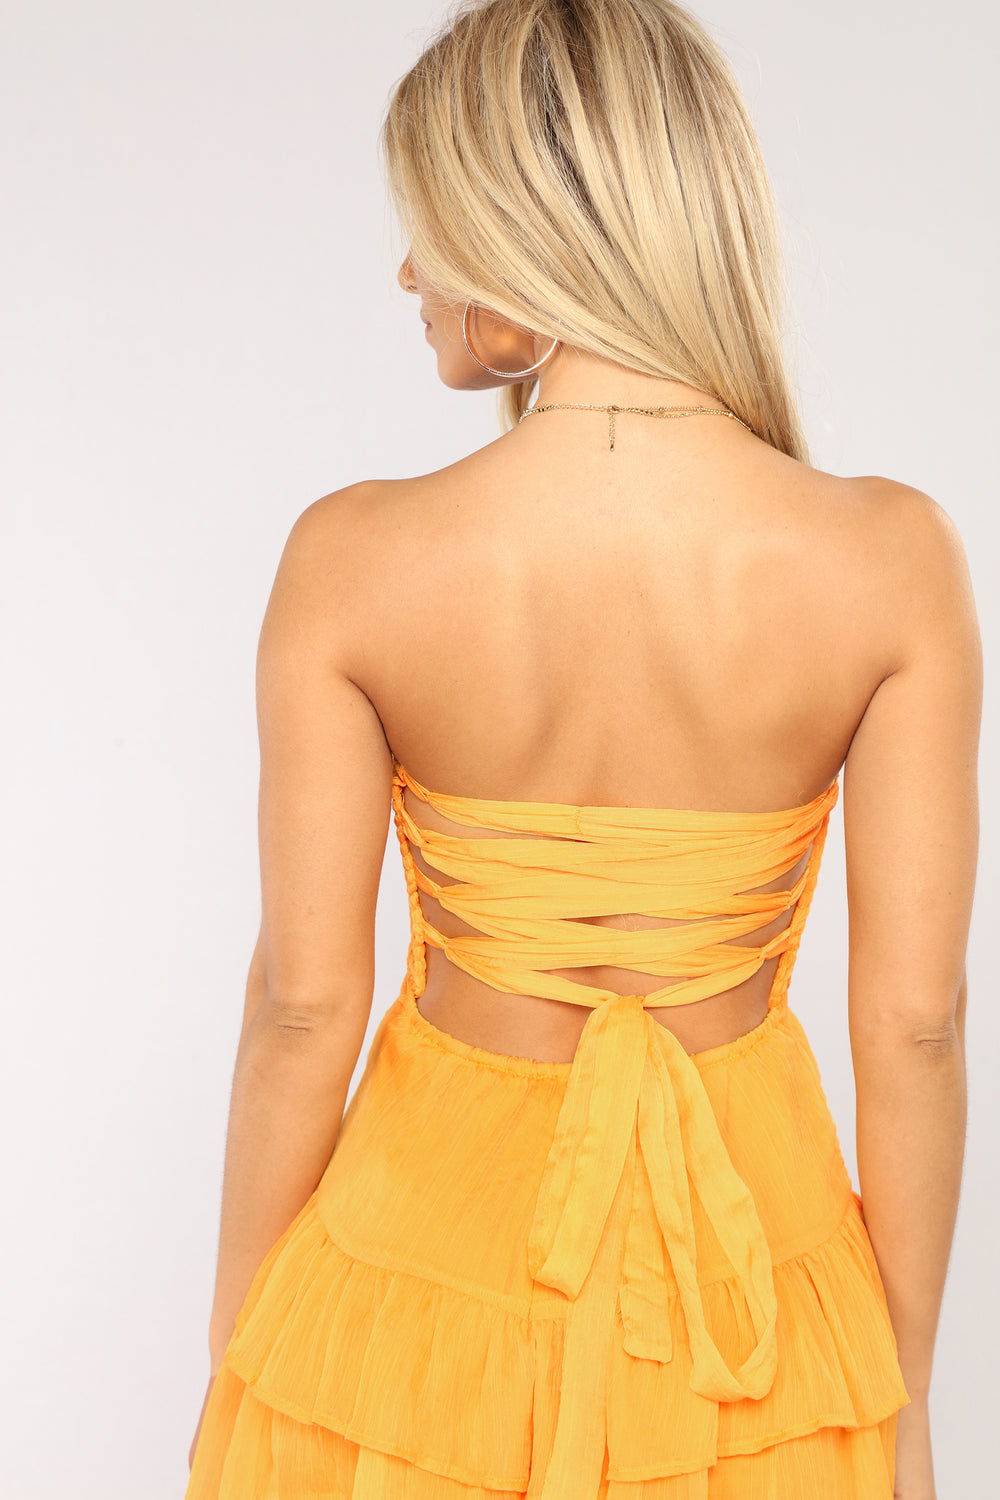 Day Dreamin' About This Romper - Yellow